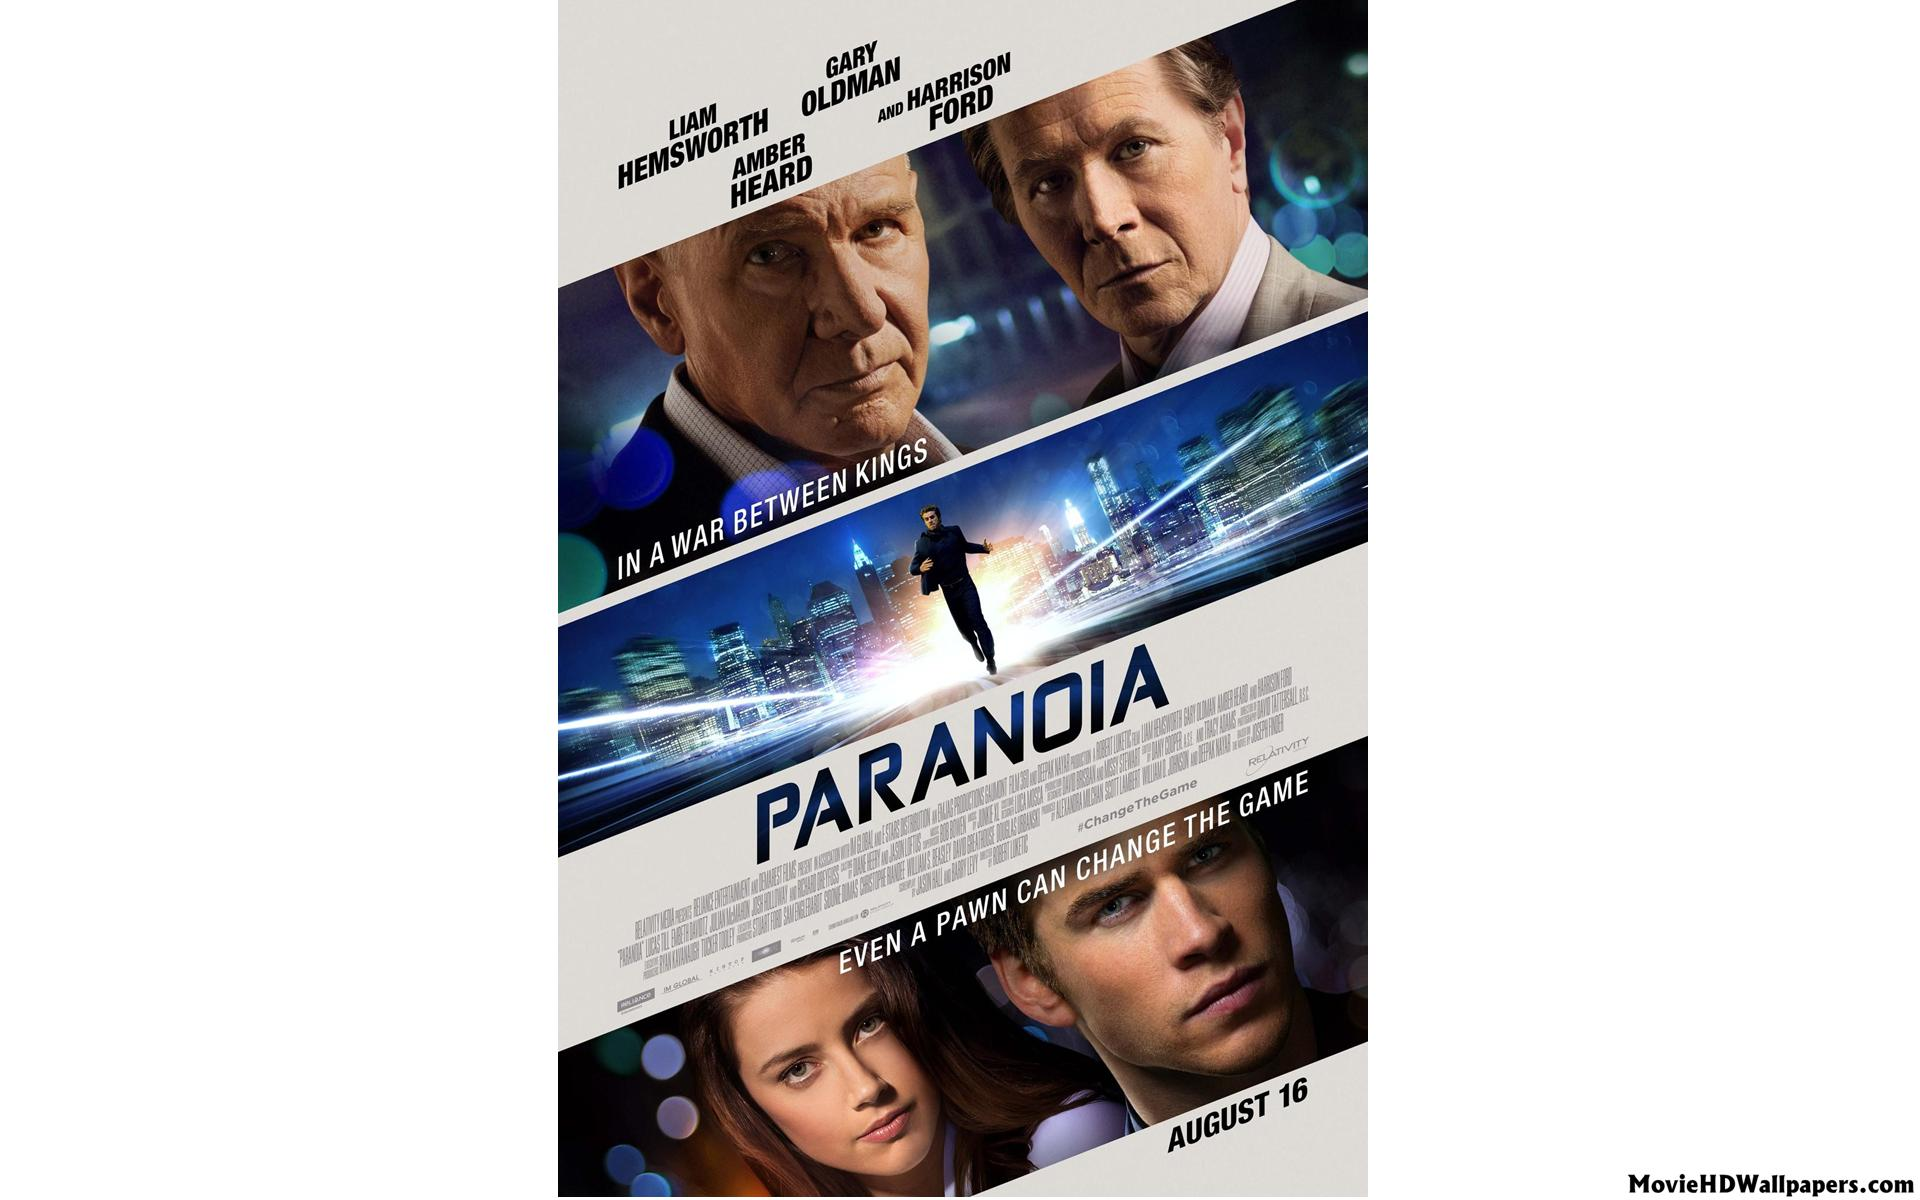 Paranoia | BraveMovies.com - watch movies online download free movies ...